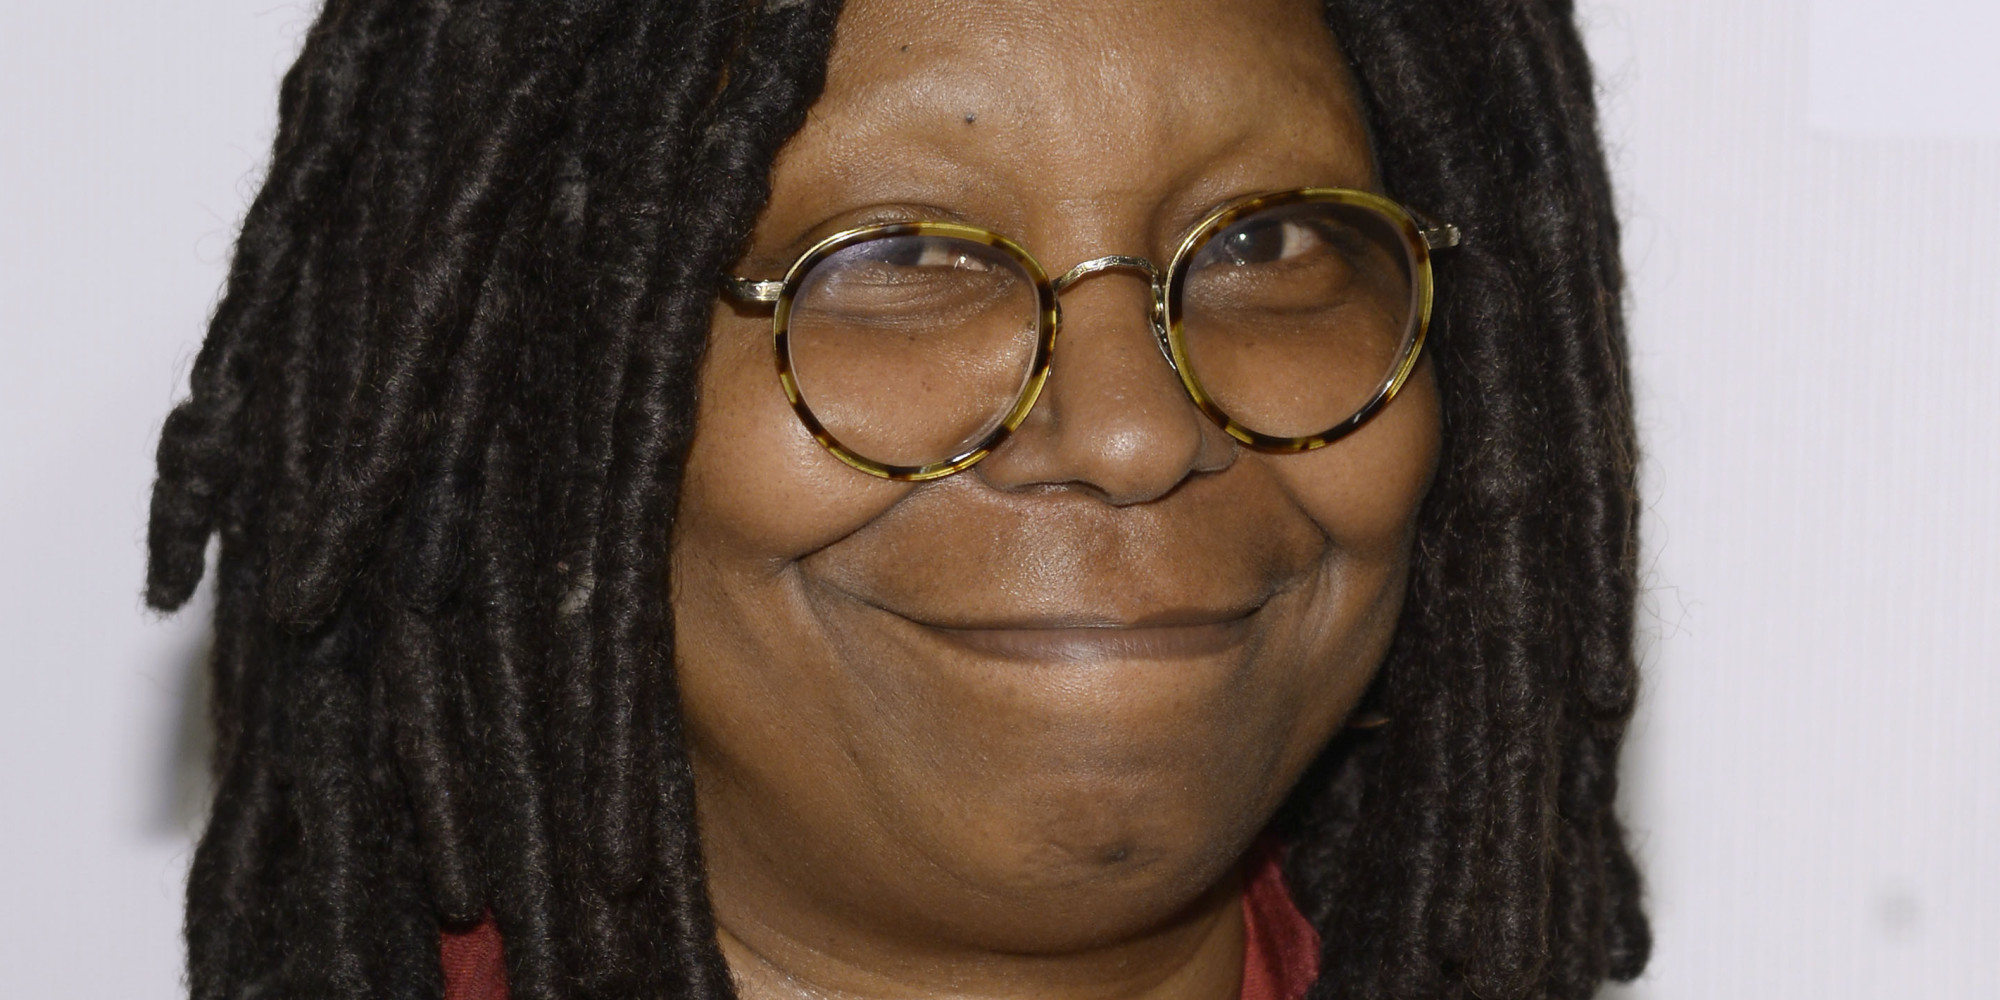 whoopi glodberg Book [whoopi goldberg] on amazoncom free shipping on qualifying offers whoopi pulls no punches in this hilarious and thought-provoking volume of wit, wisdom and outrageous personal observations here's the world according to whoopi.